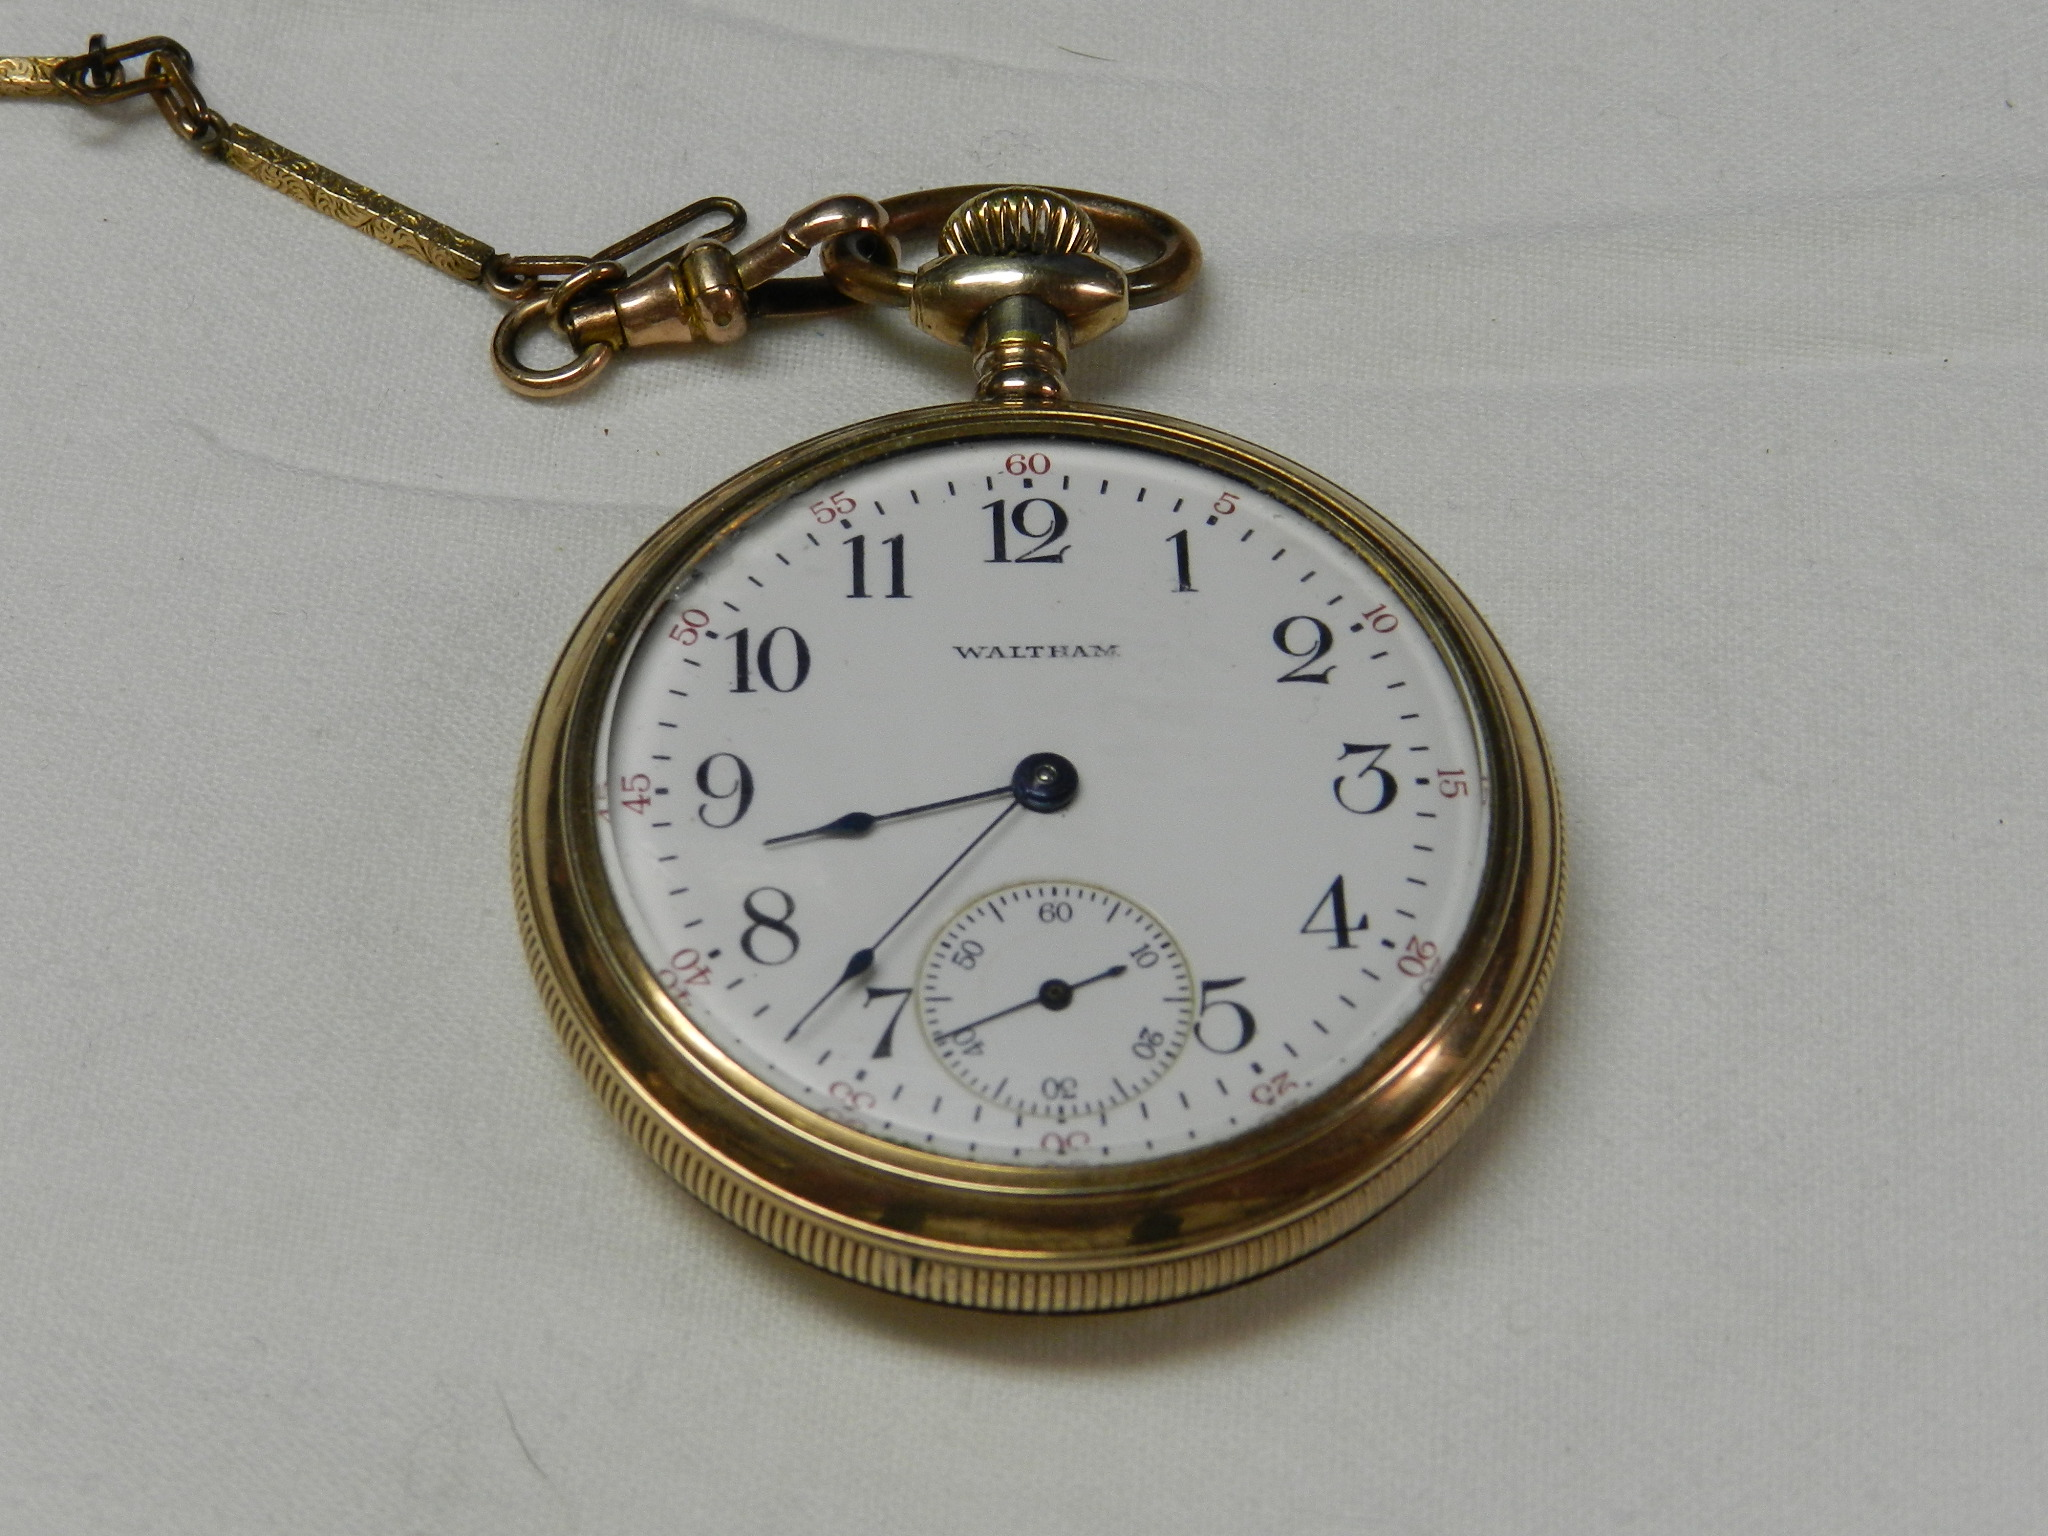 $210 - Waltham Traveller Pocket Watch - GOLD Fill and Art Relief